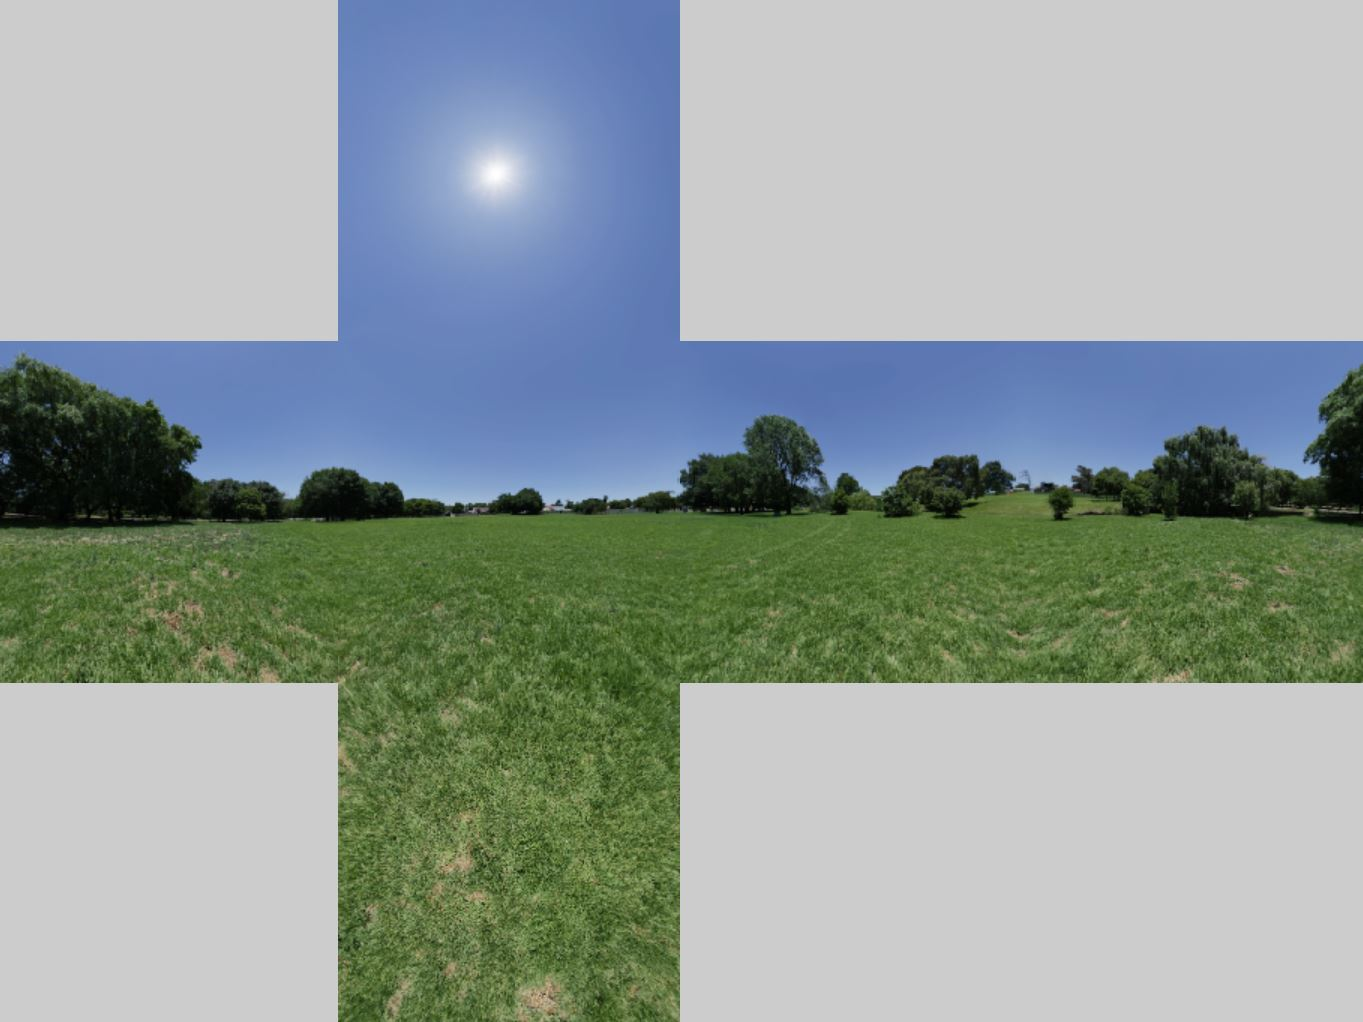 HDRI_Cube_Sample.JPG